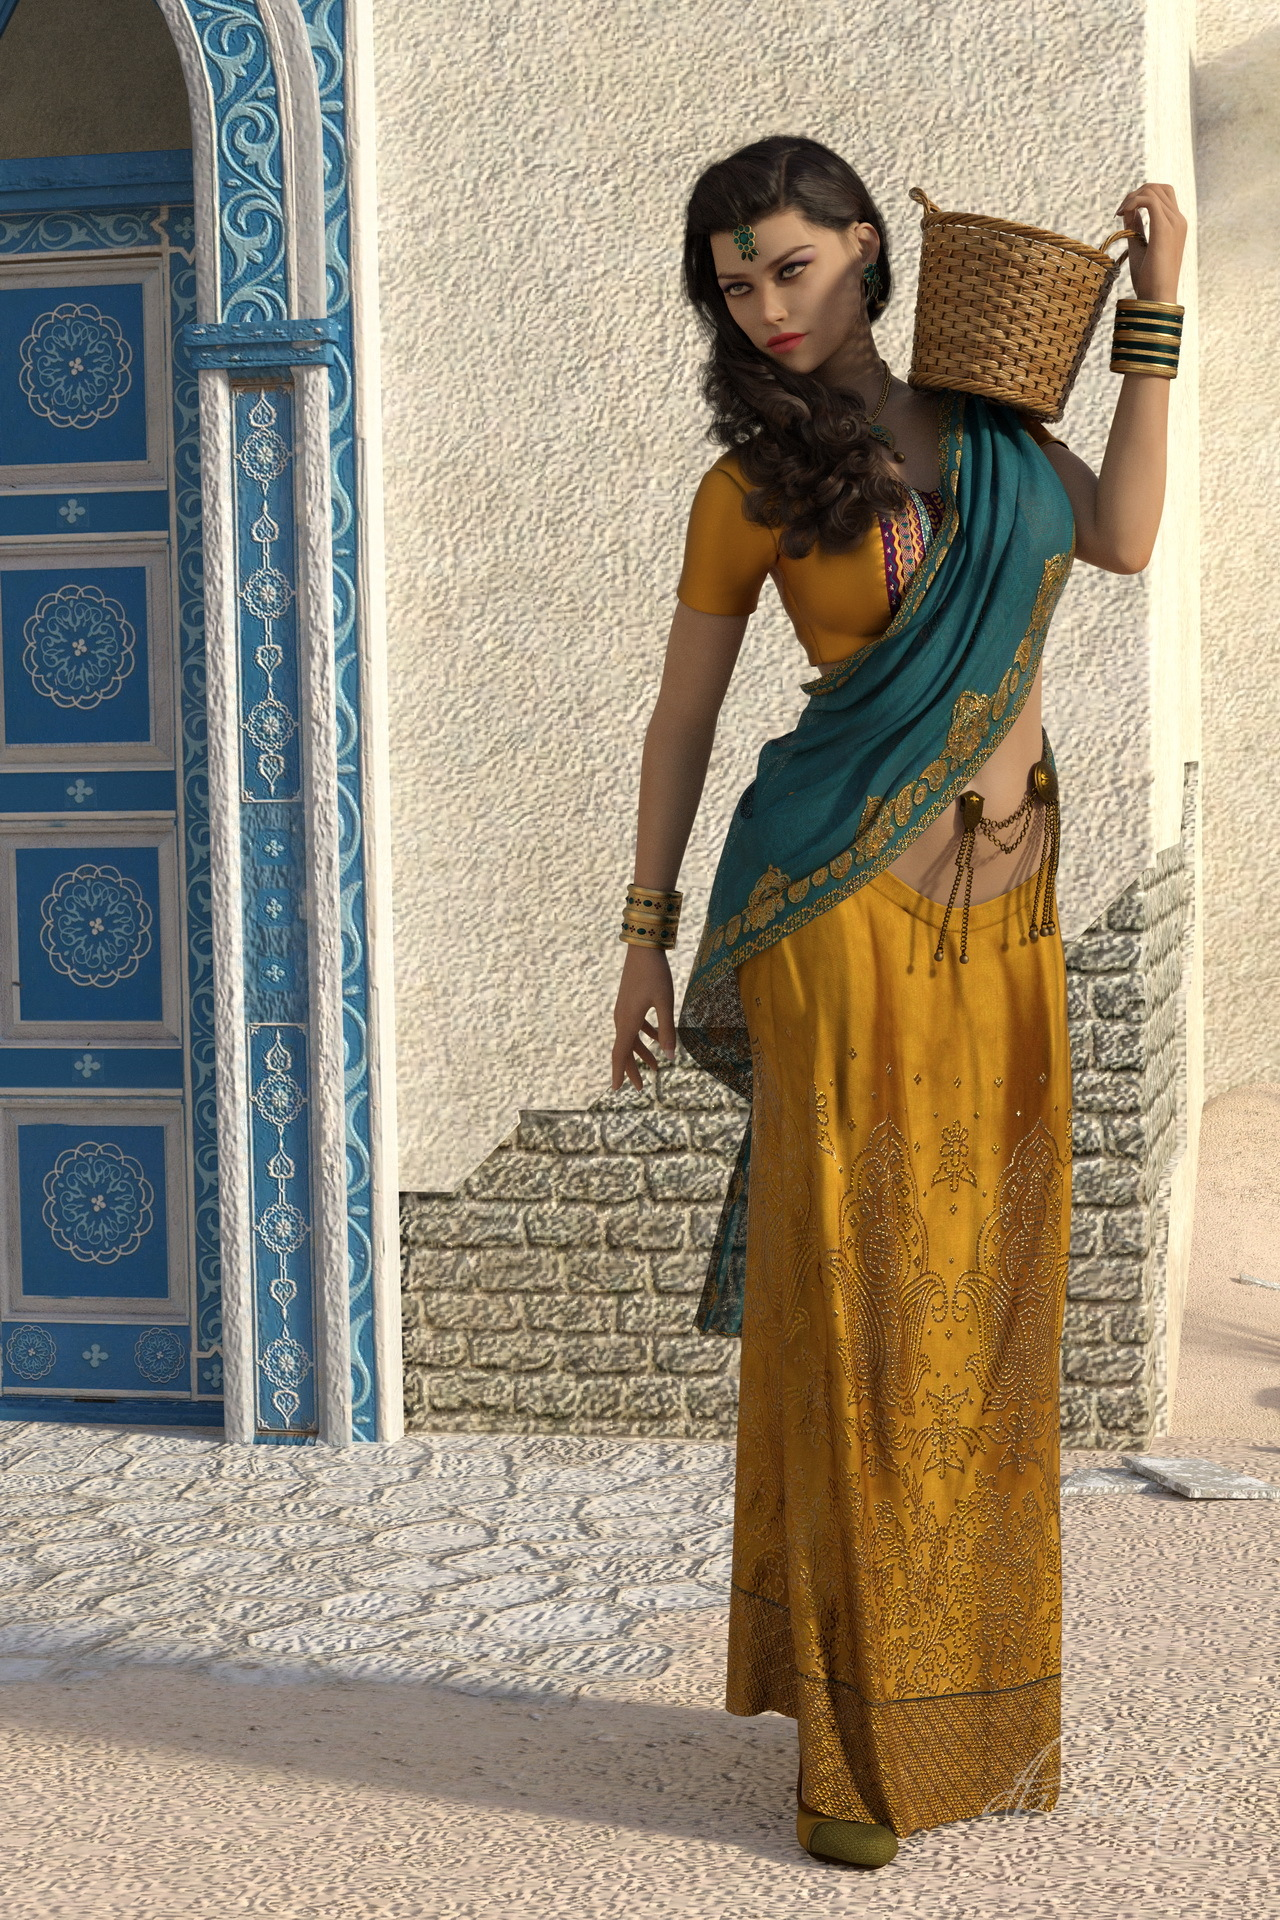 Indian Woman Going to the Market by dbwalton